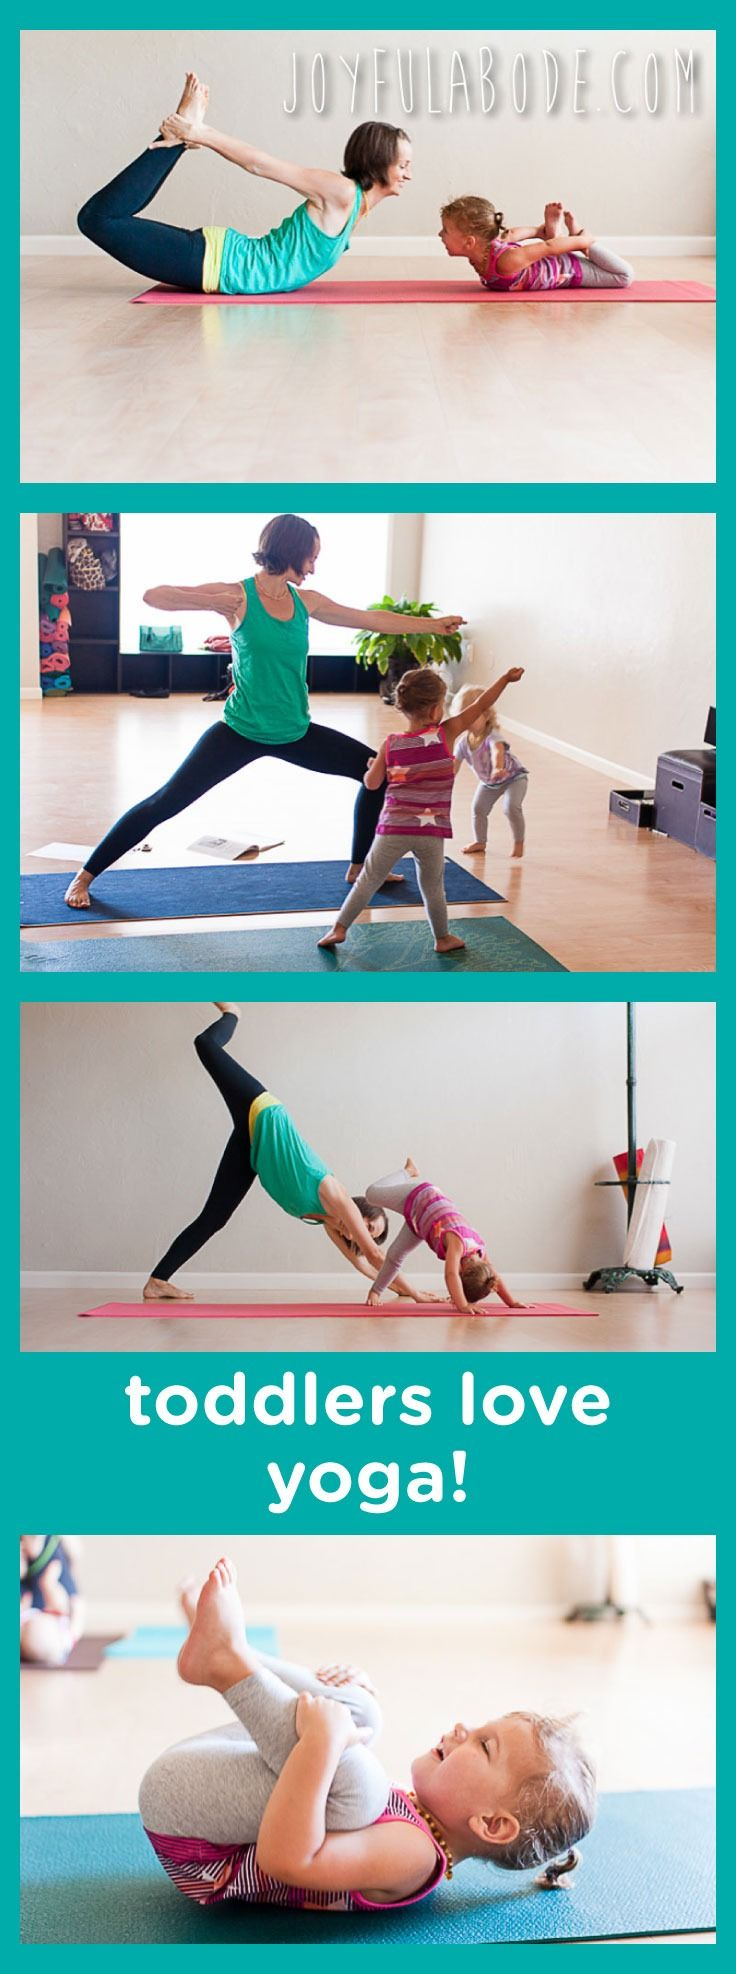 We love yoga for little ones  This toddler activity is a fun way to switch up your toddler playtime